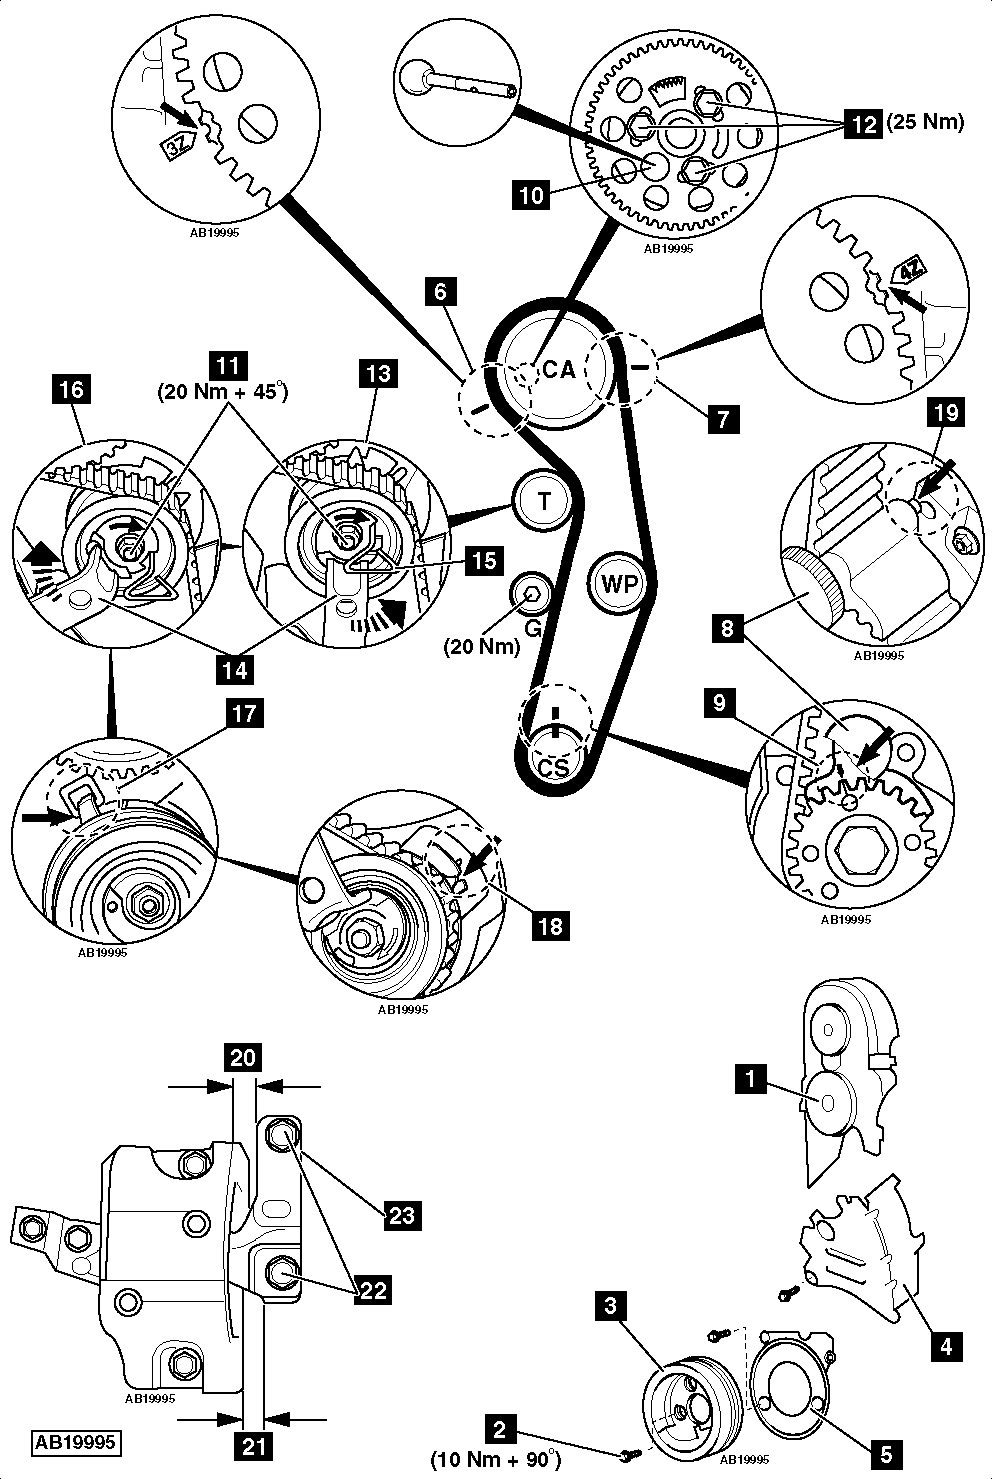 2015 vw tdi timing belt vw golf engine bay diagram at freeautoresponder co